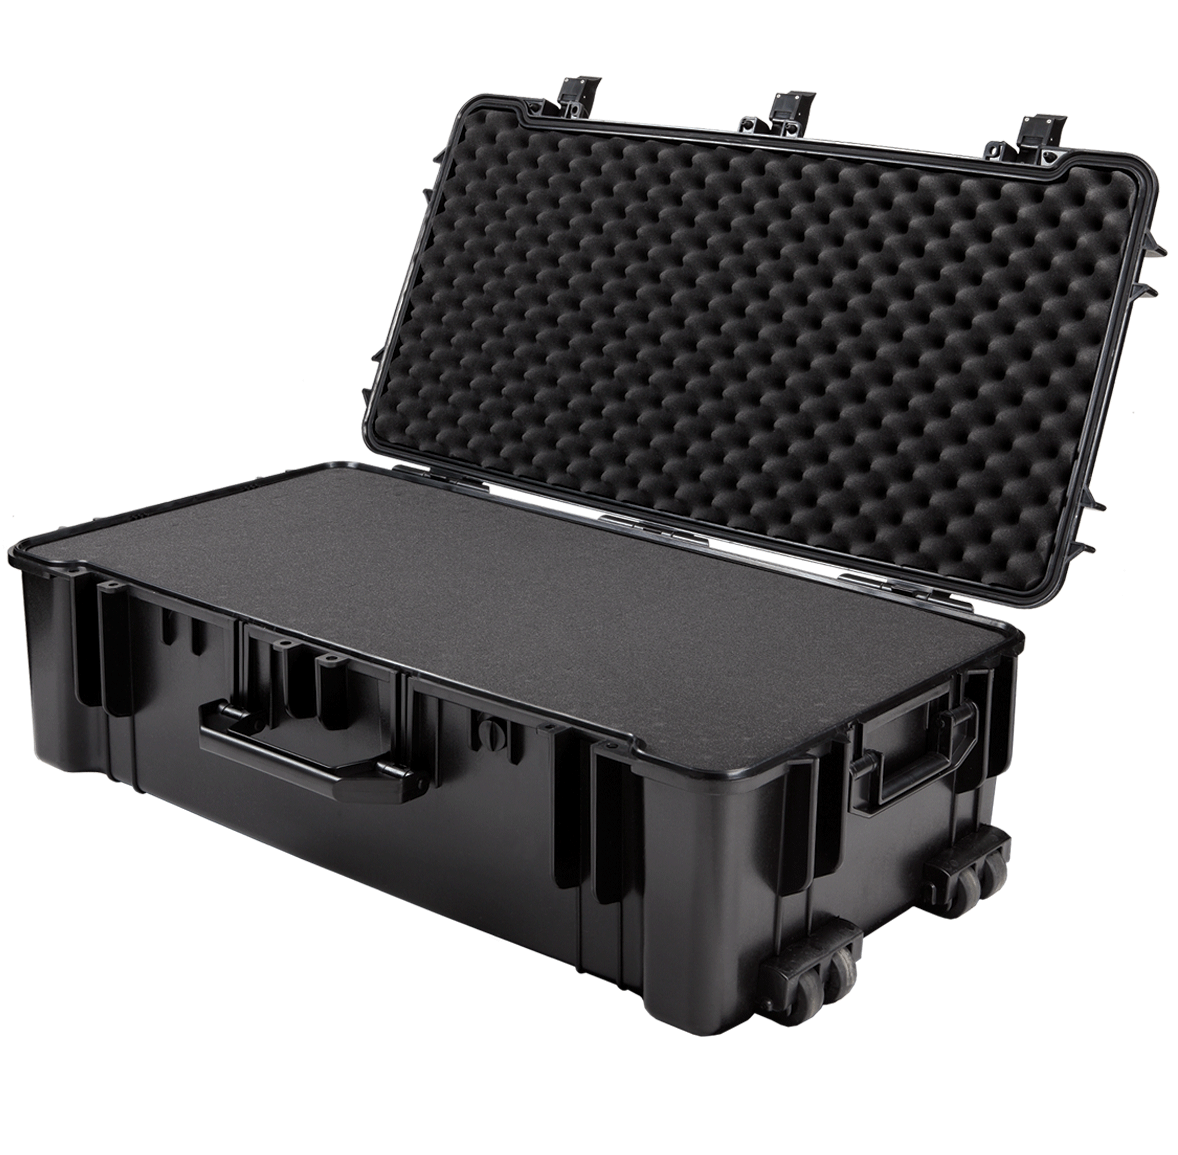 Adearstudio Wonderful pc9930 ABS safety box trolley luggage box waterproof tool box large dry box CD50(China (Mainland))